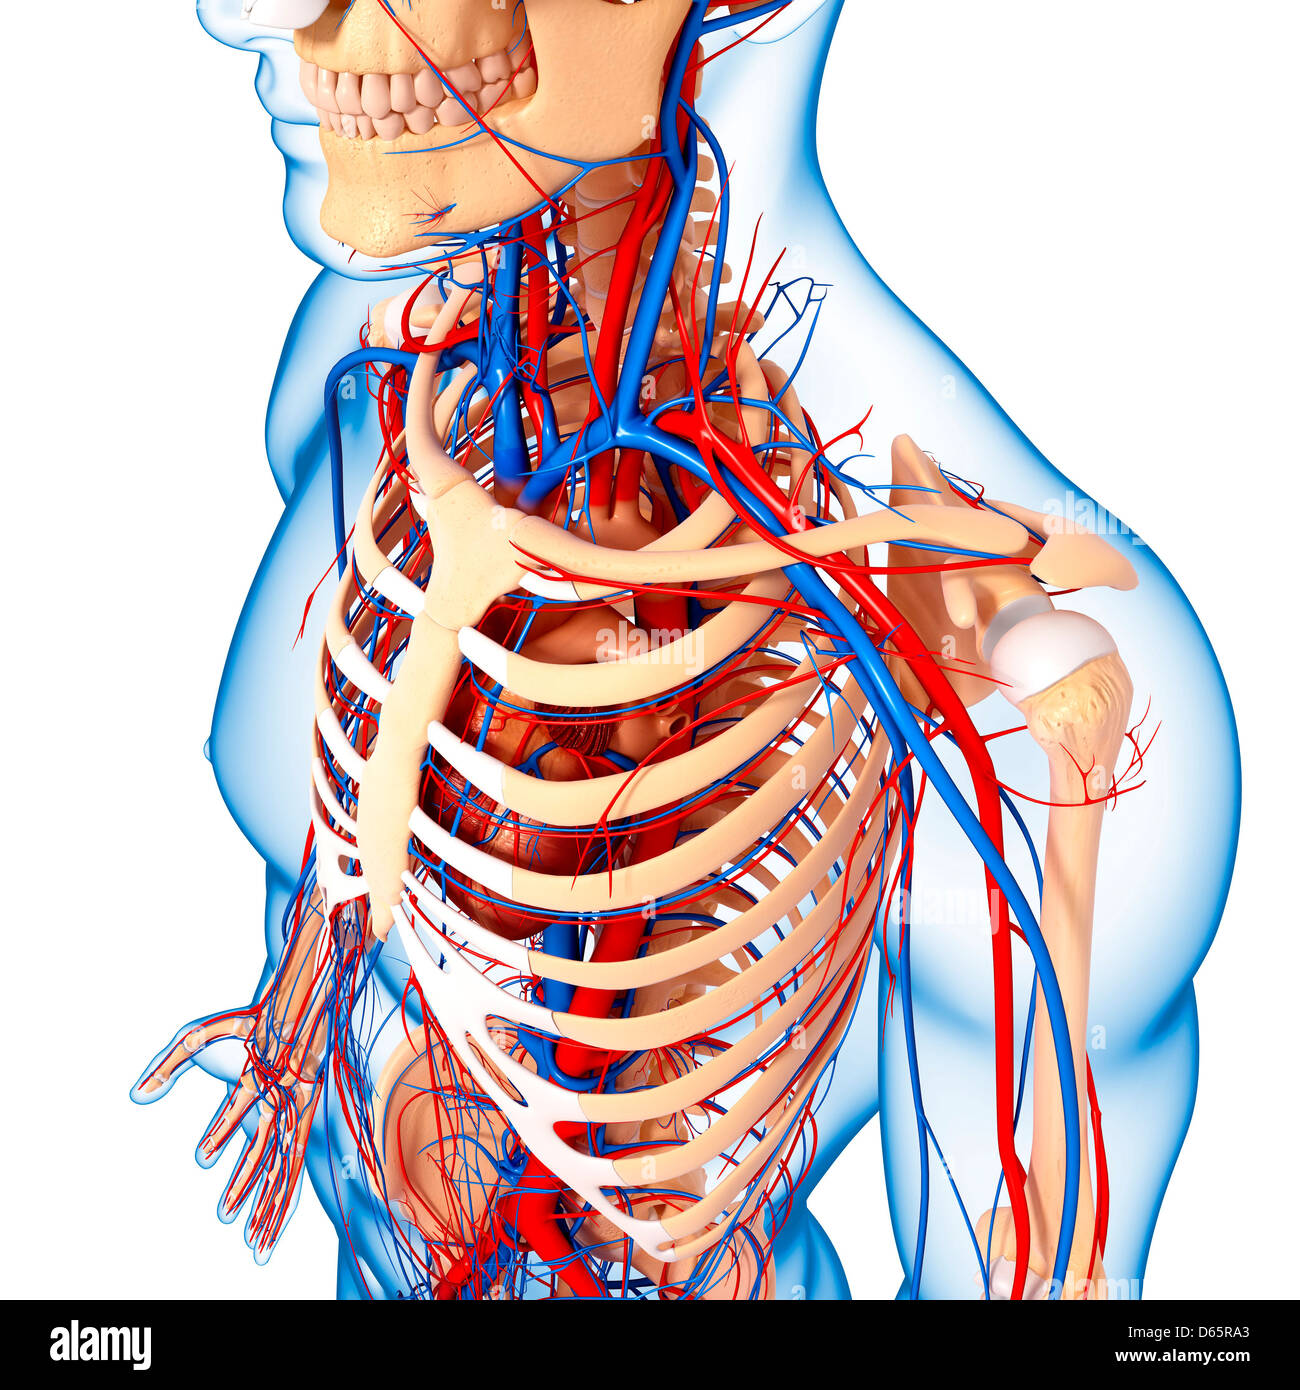 Upper body anatomy, artwork Stock Photo: 55447115 - Alamy